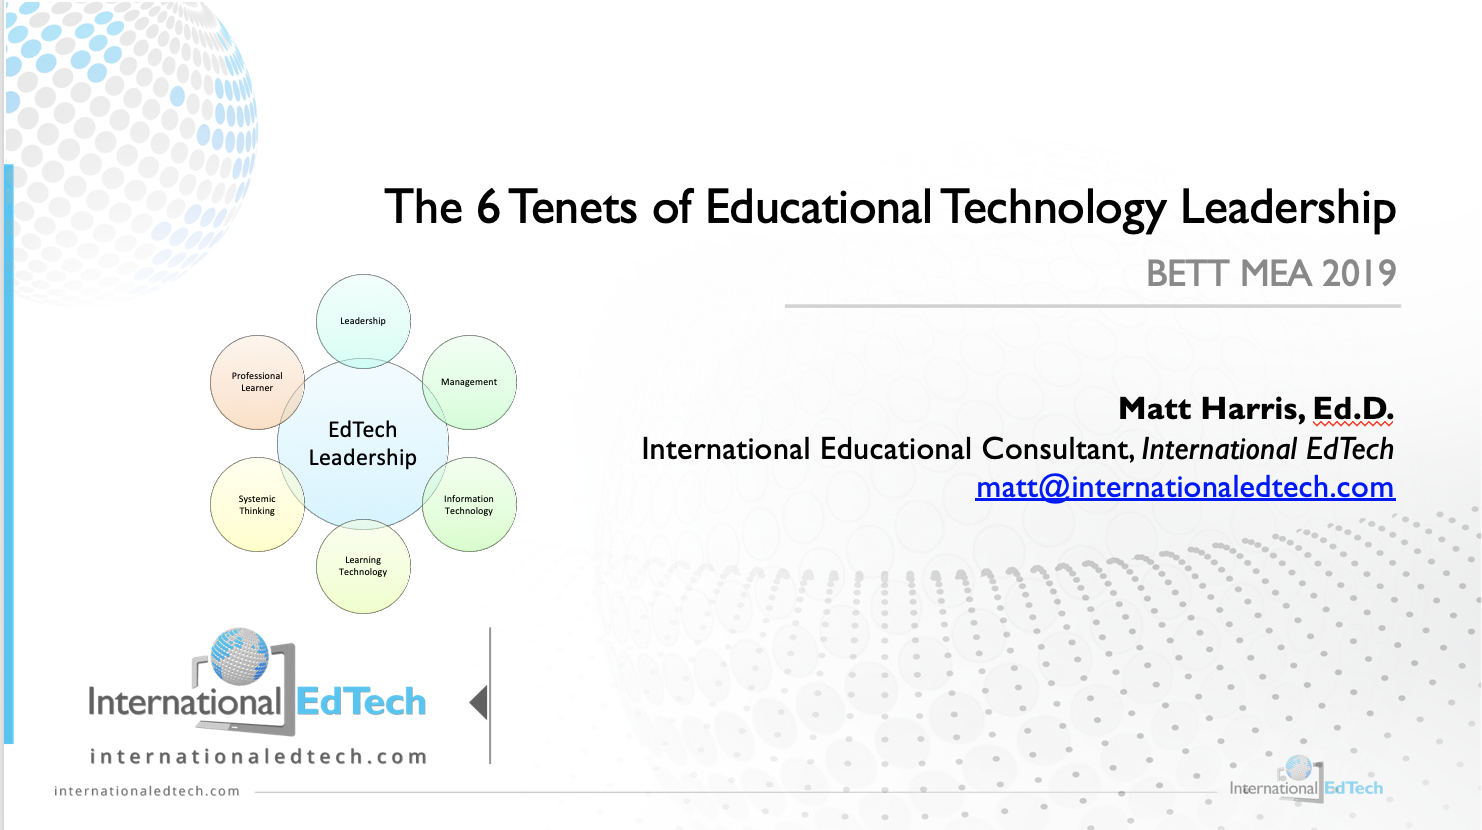 The 6 Tenets of Educational Technology Leadership - BETT MEA 2019